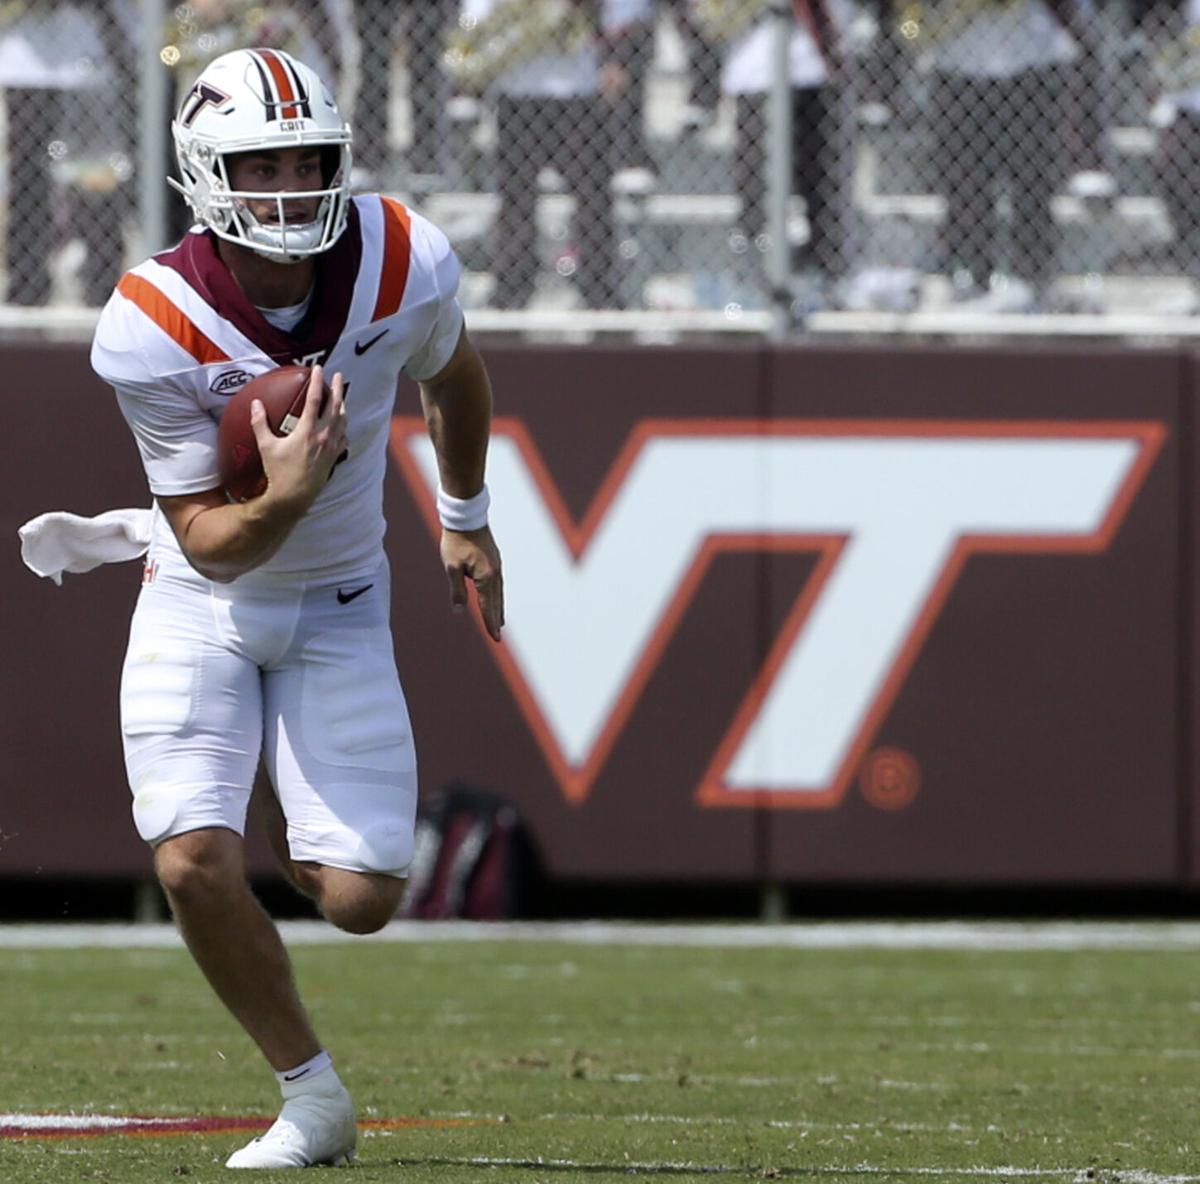 Middle Tennessee Virginia Tech football (copy)